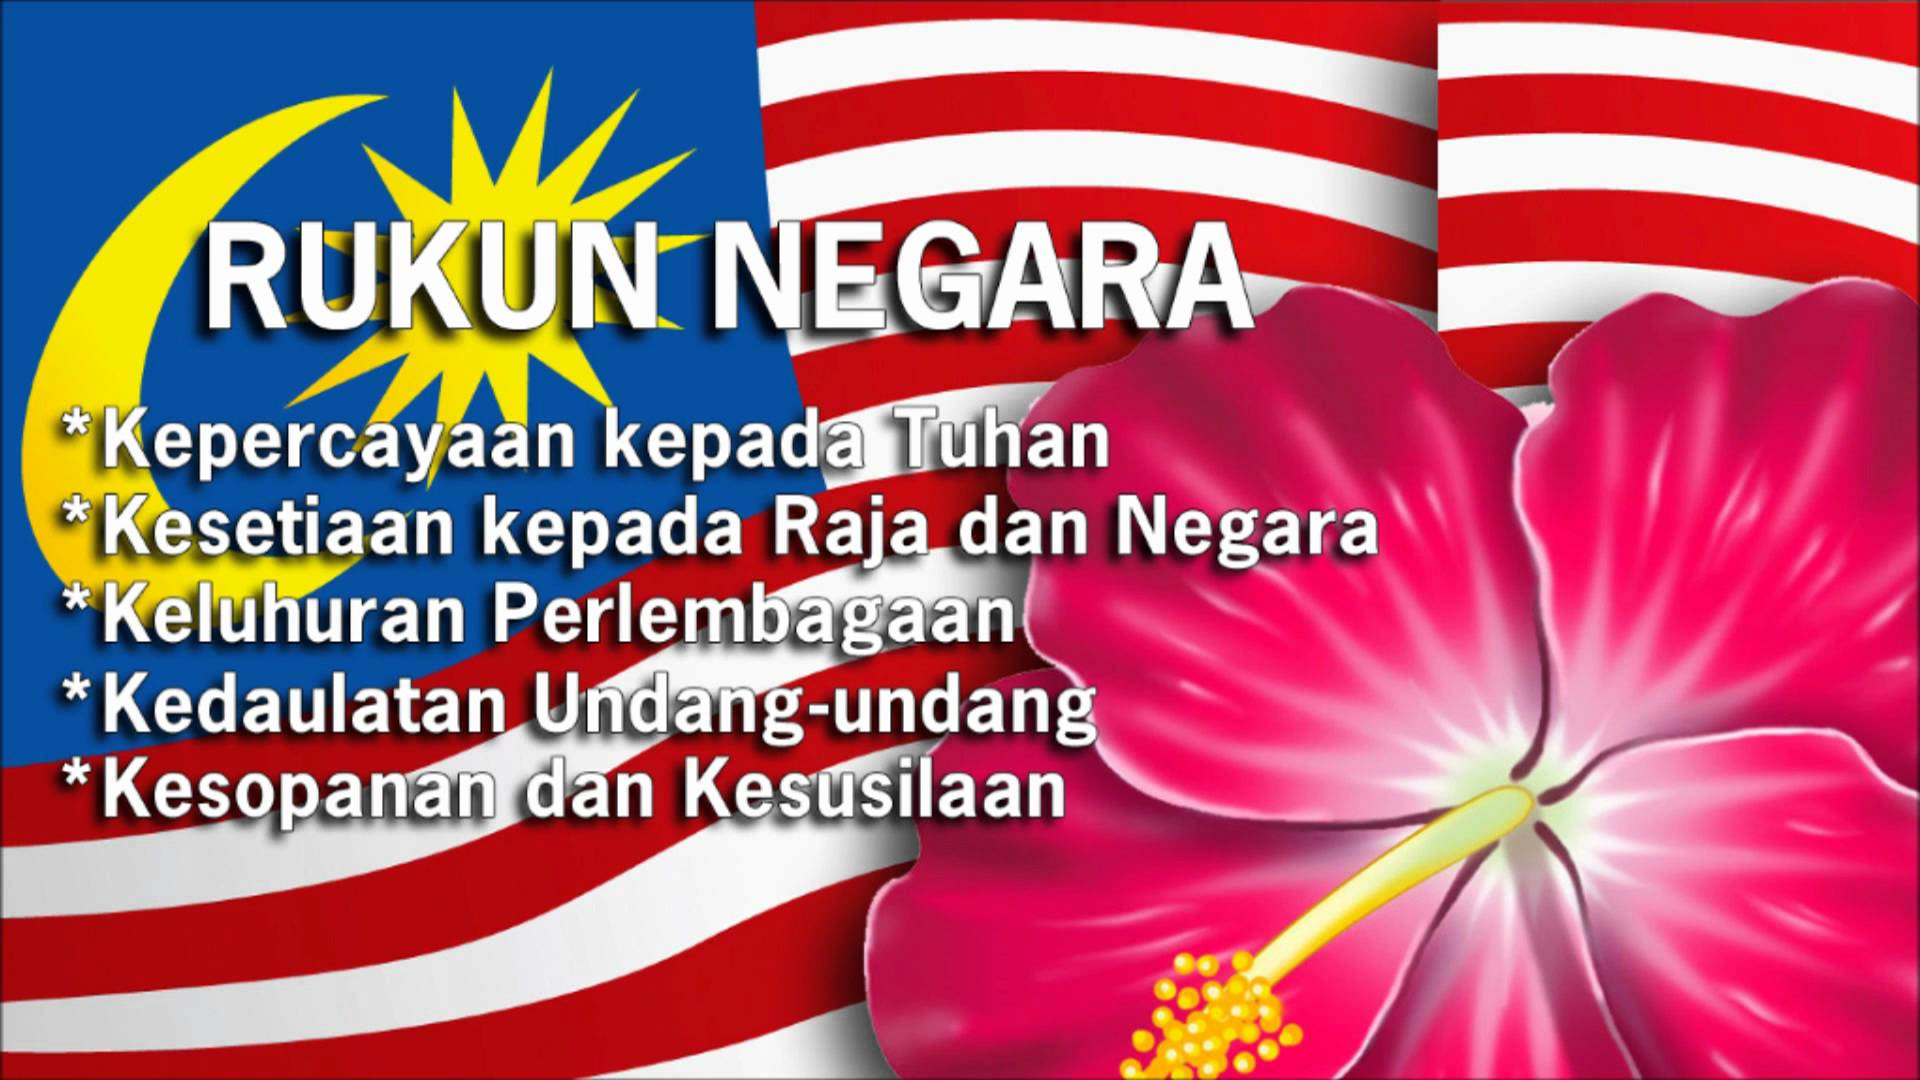 MAKE THE RUKUNEGARA THE PREAMBLE OF THE CONSTITUTION.